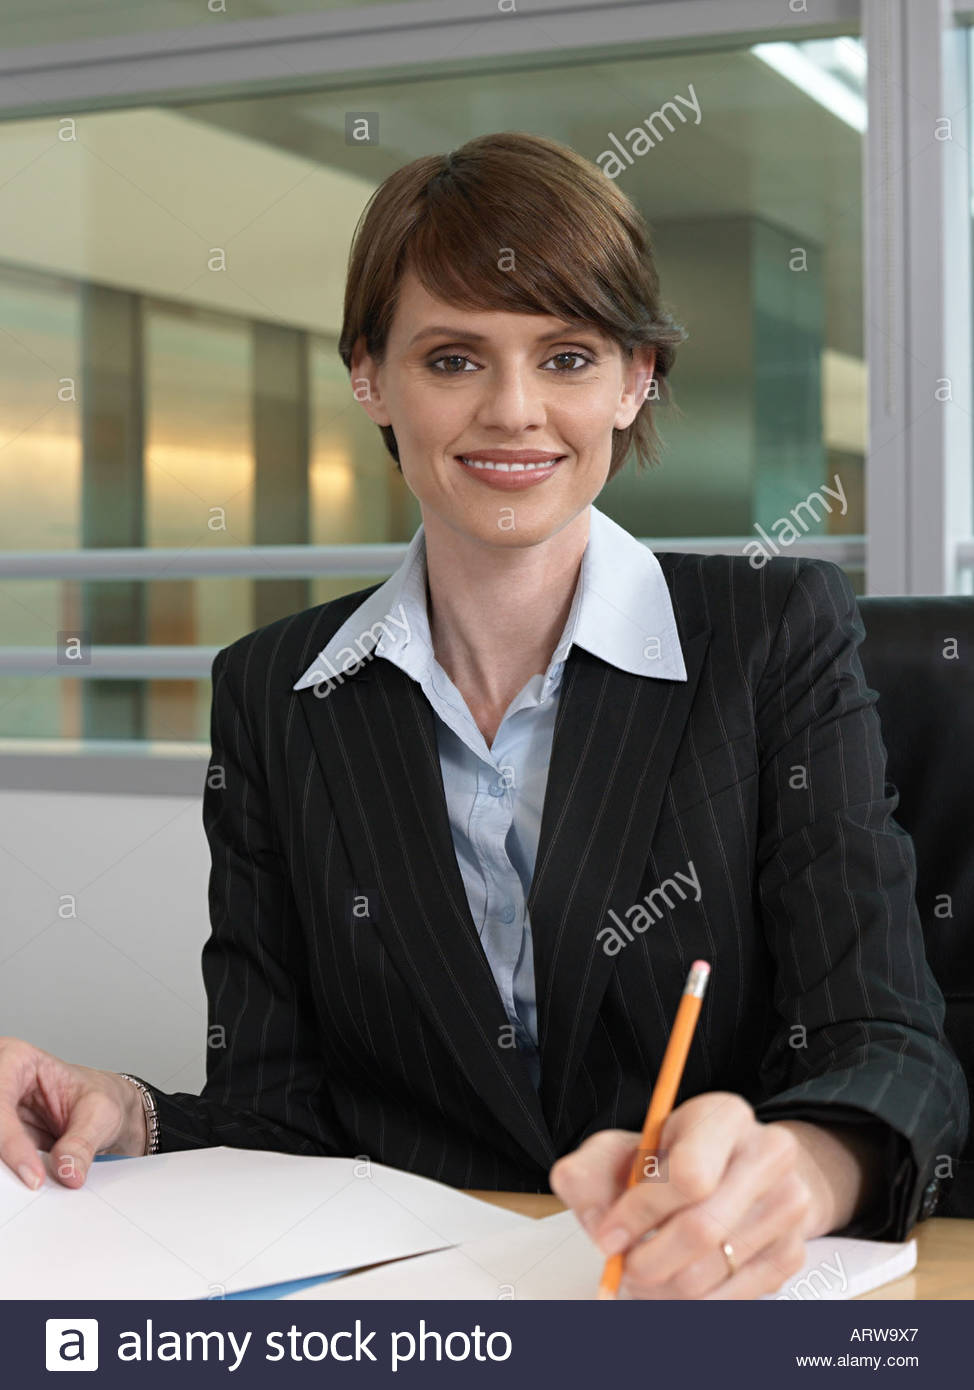 Businesswoman making notes - Stock Image